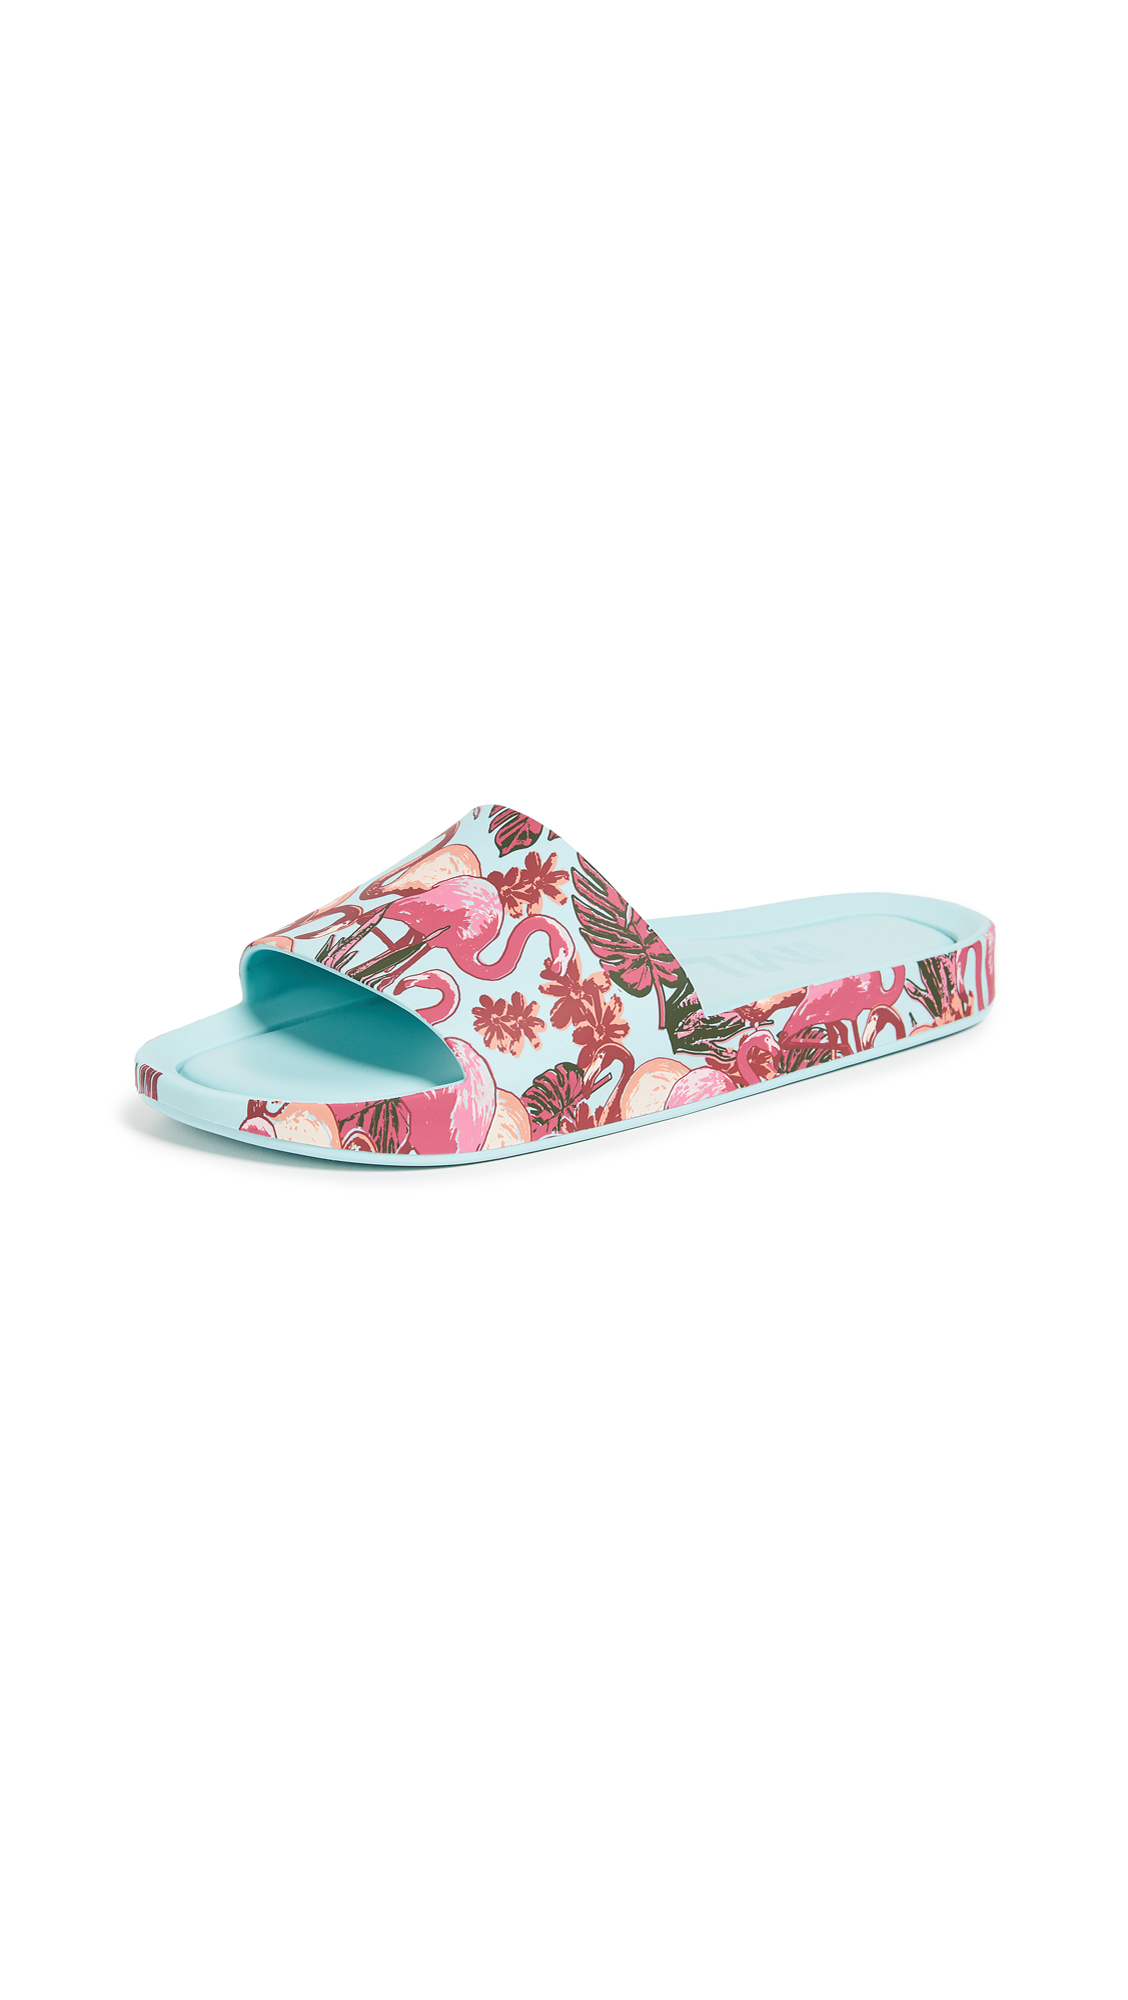 Melissa Beach Rain Slide Sandals - Light Green/Multi